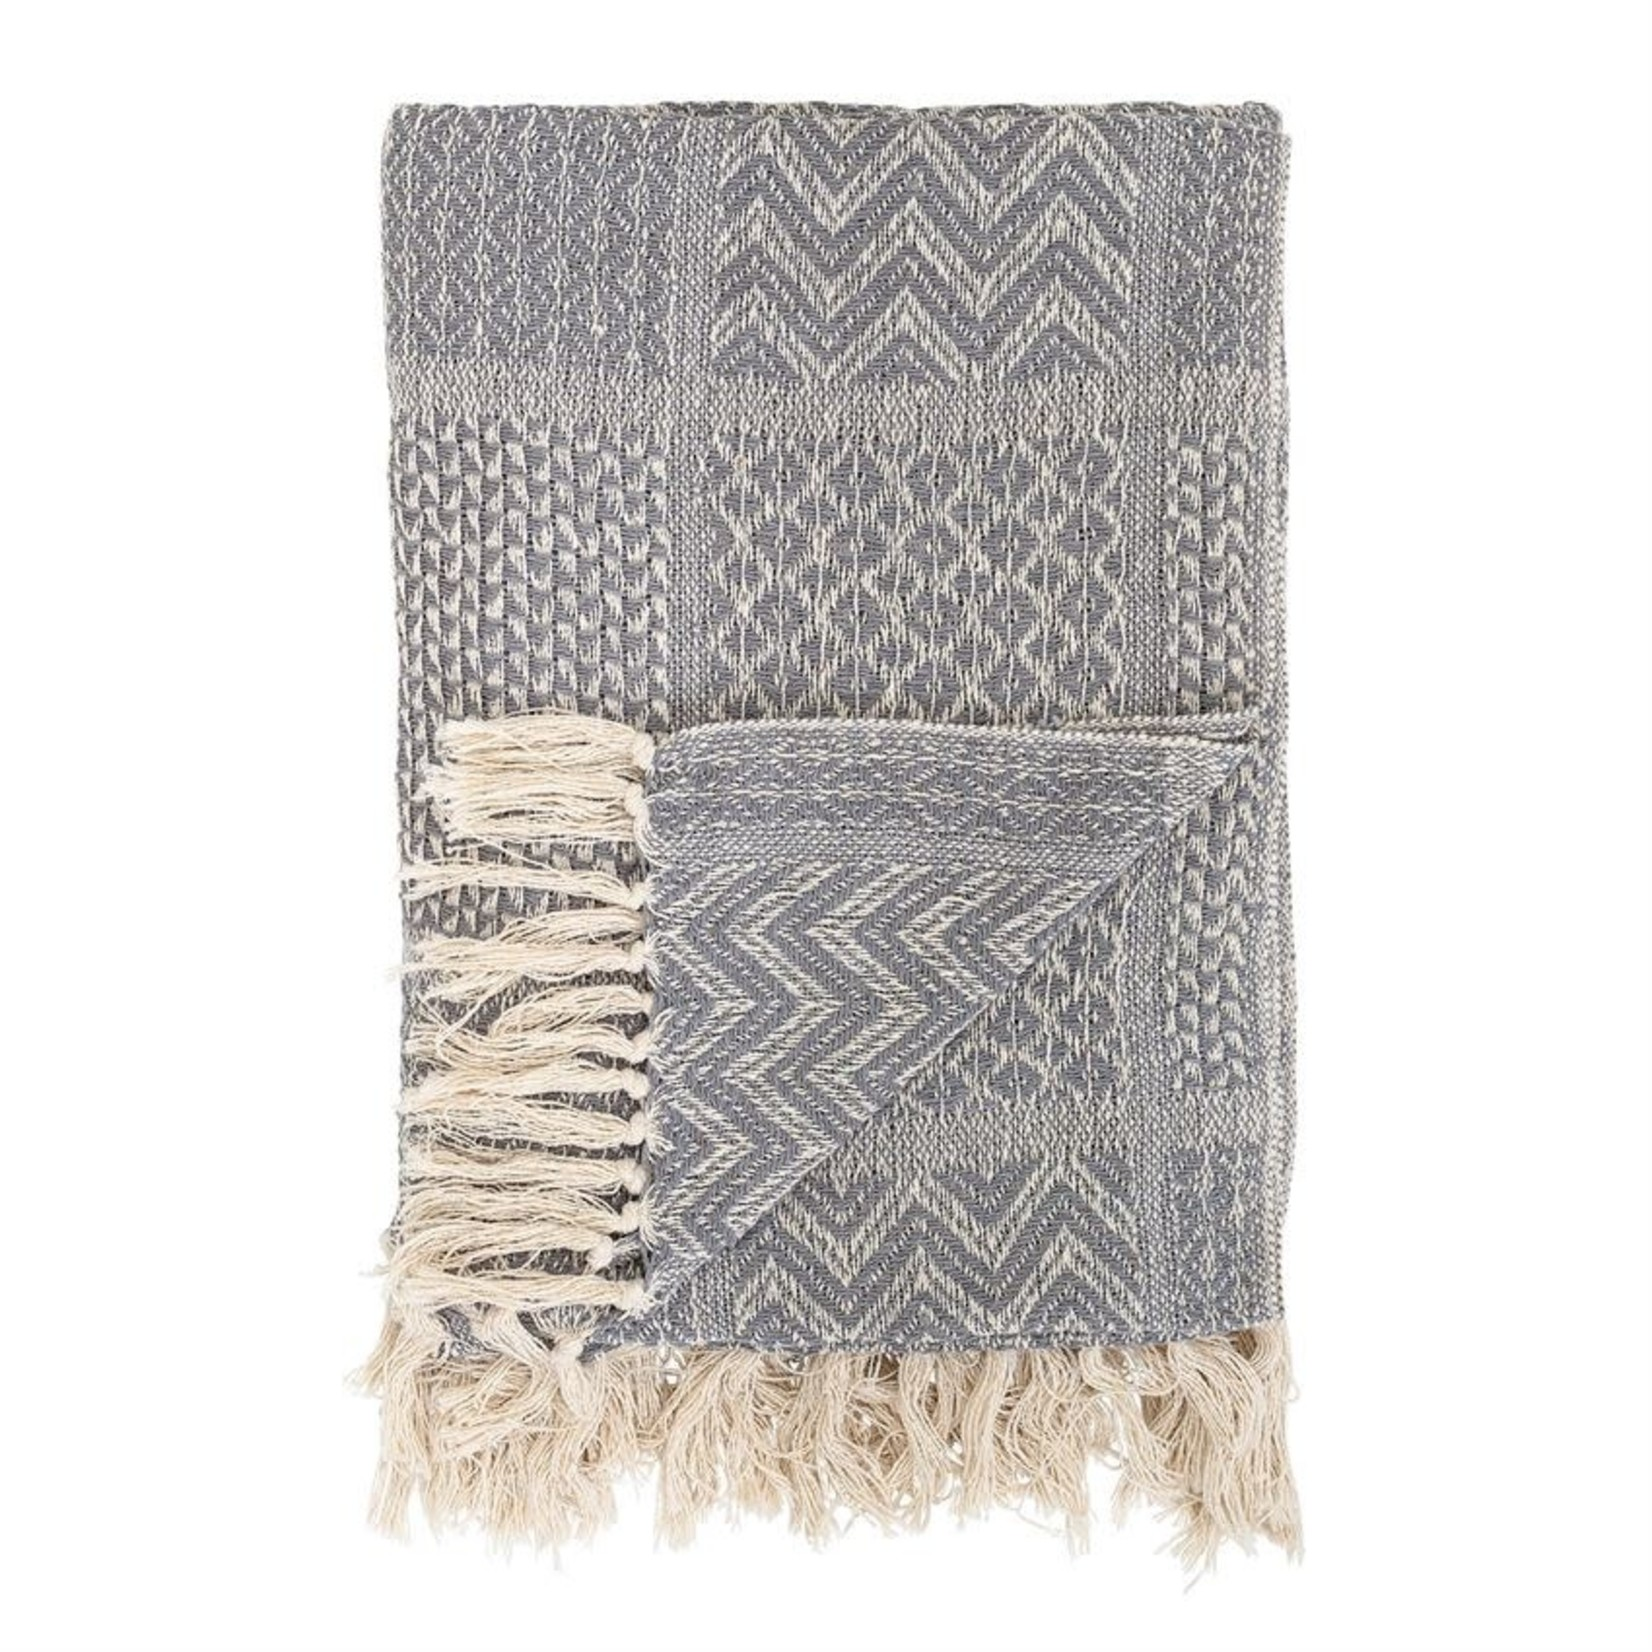 Grey Recycled Cotton Blend Throw